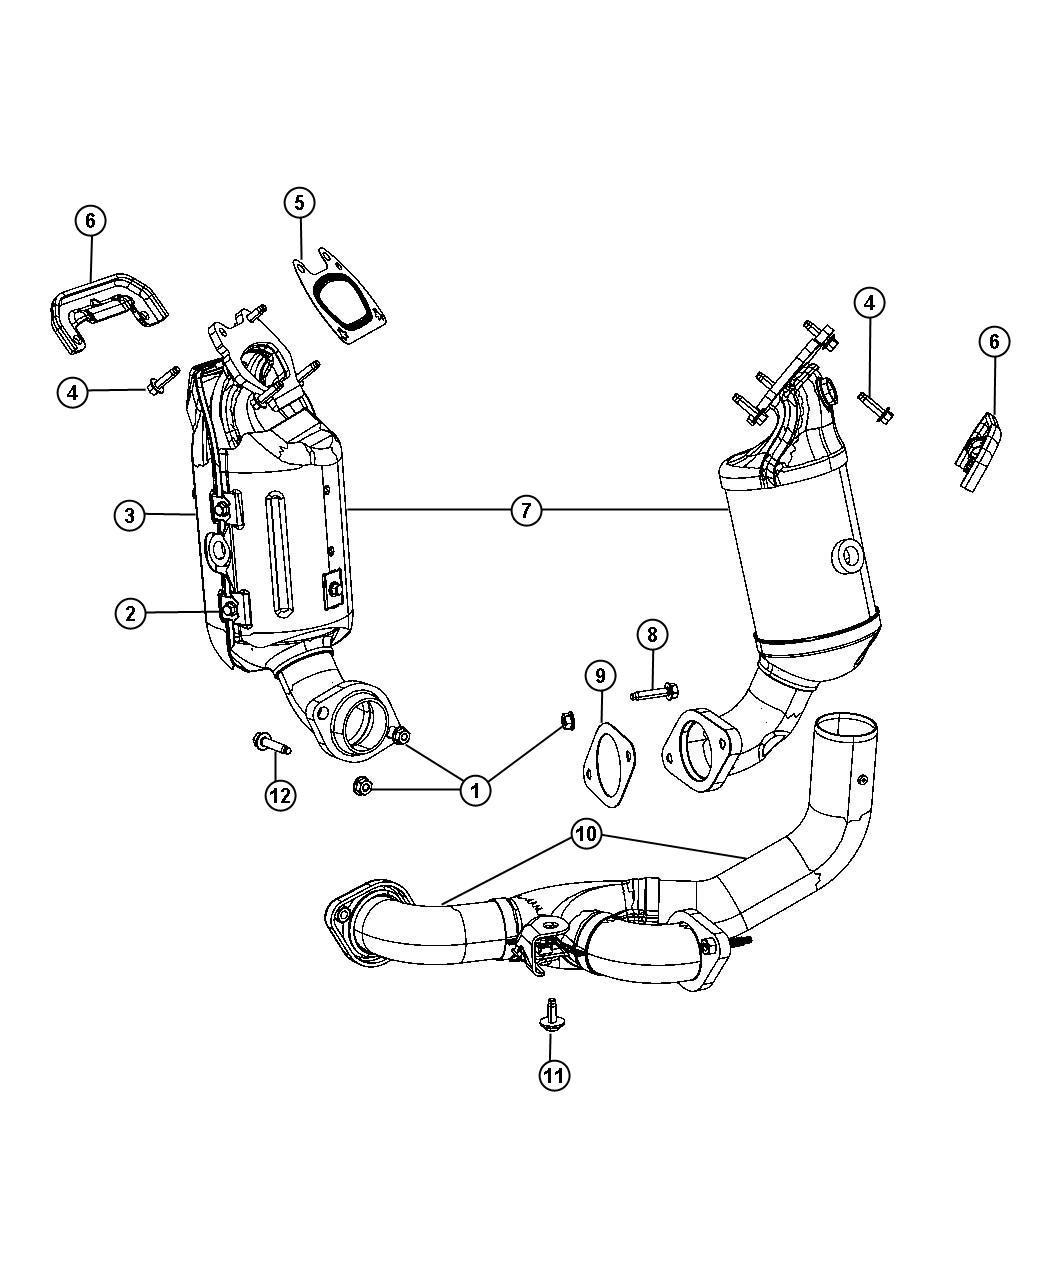 2011 Chrysler Town And Country Engine Diagram. Chrysler